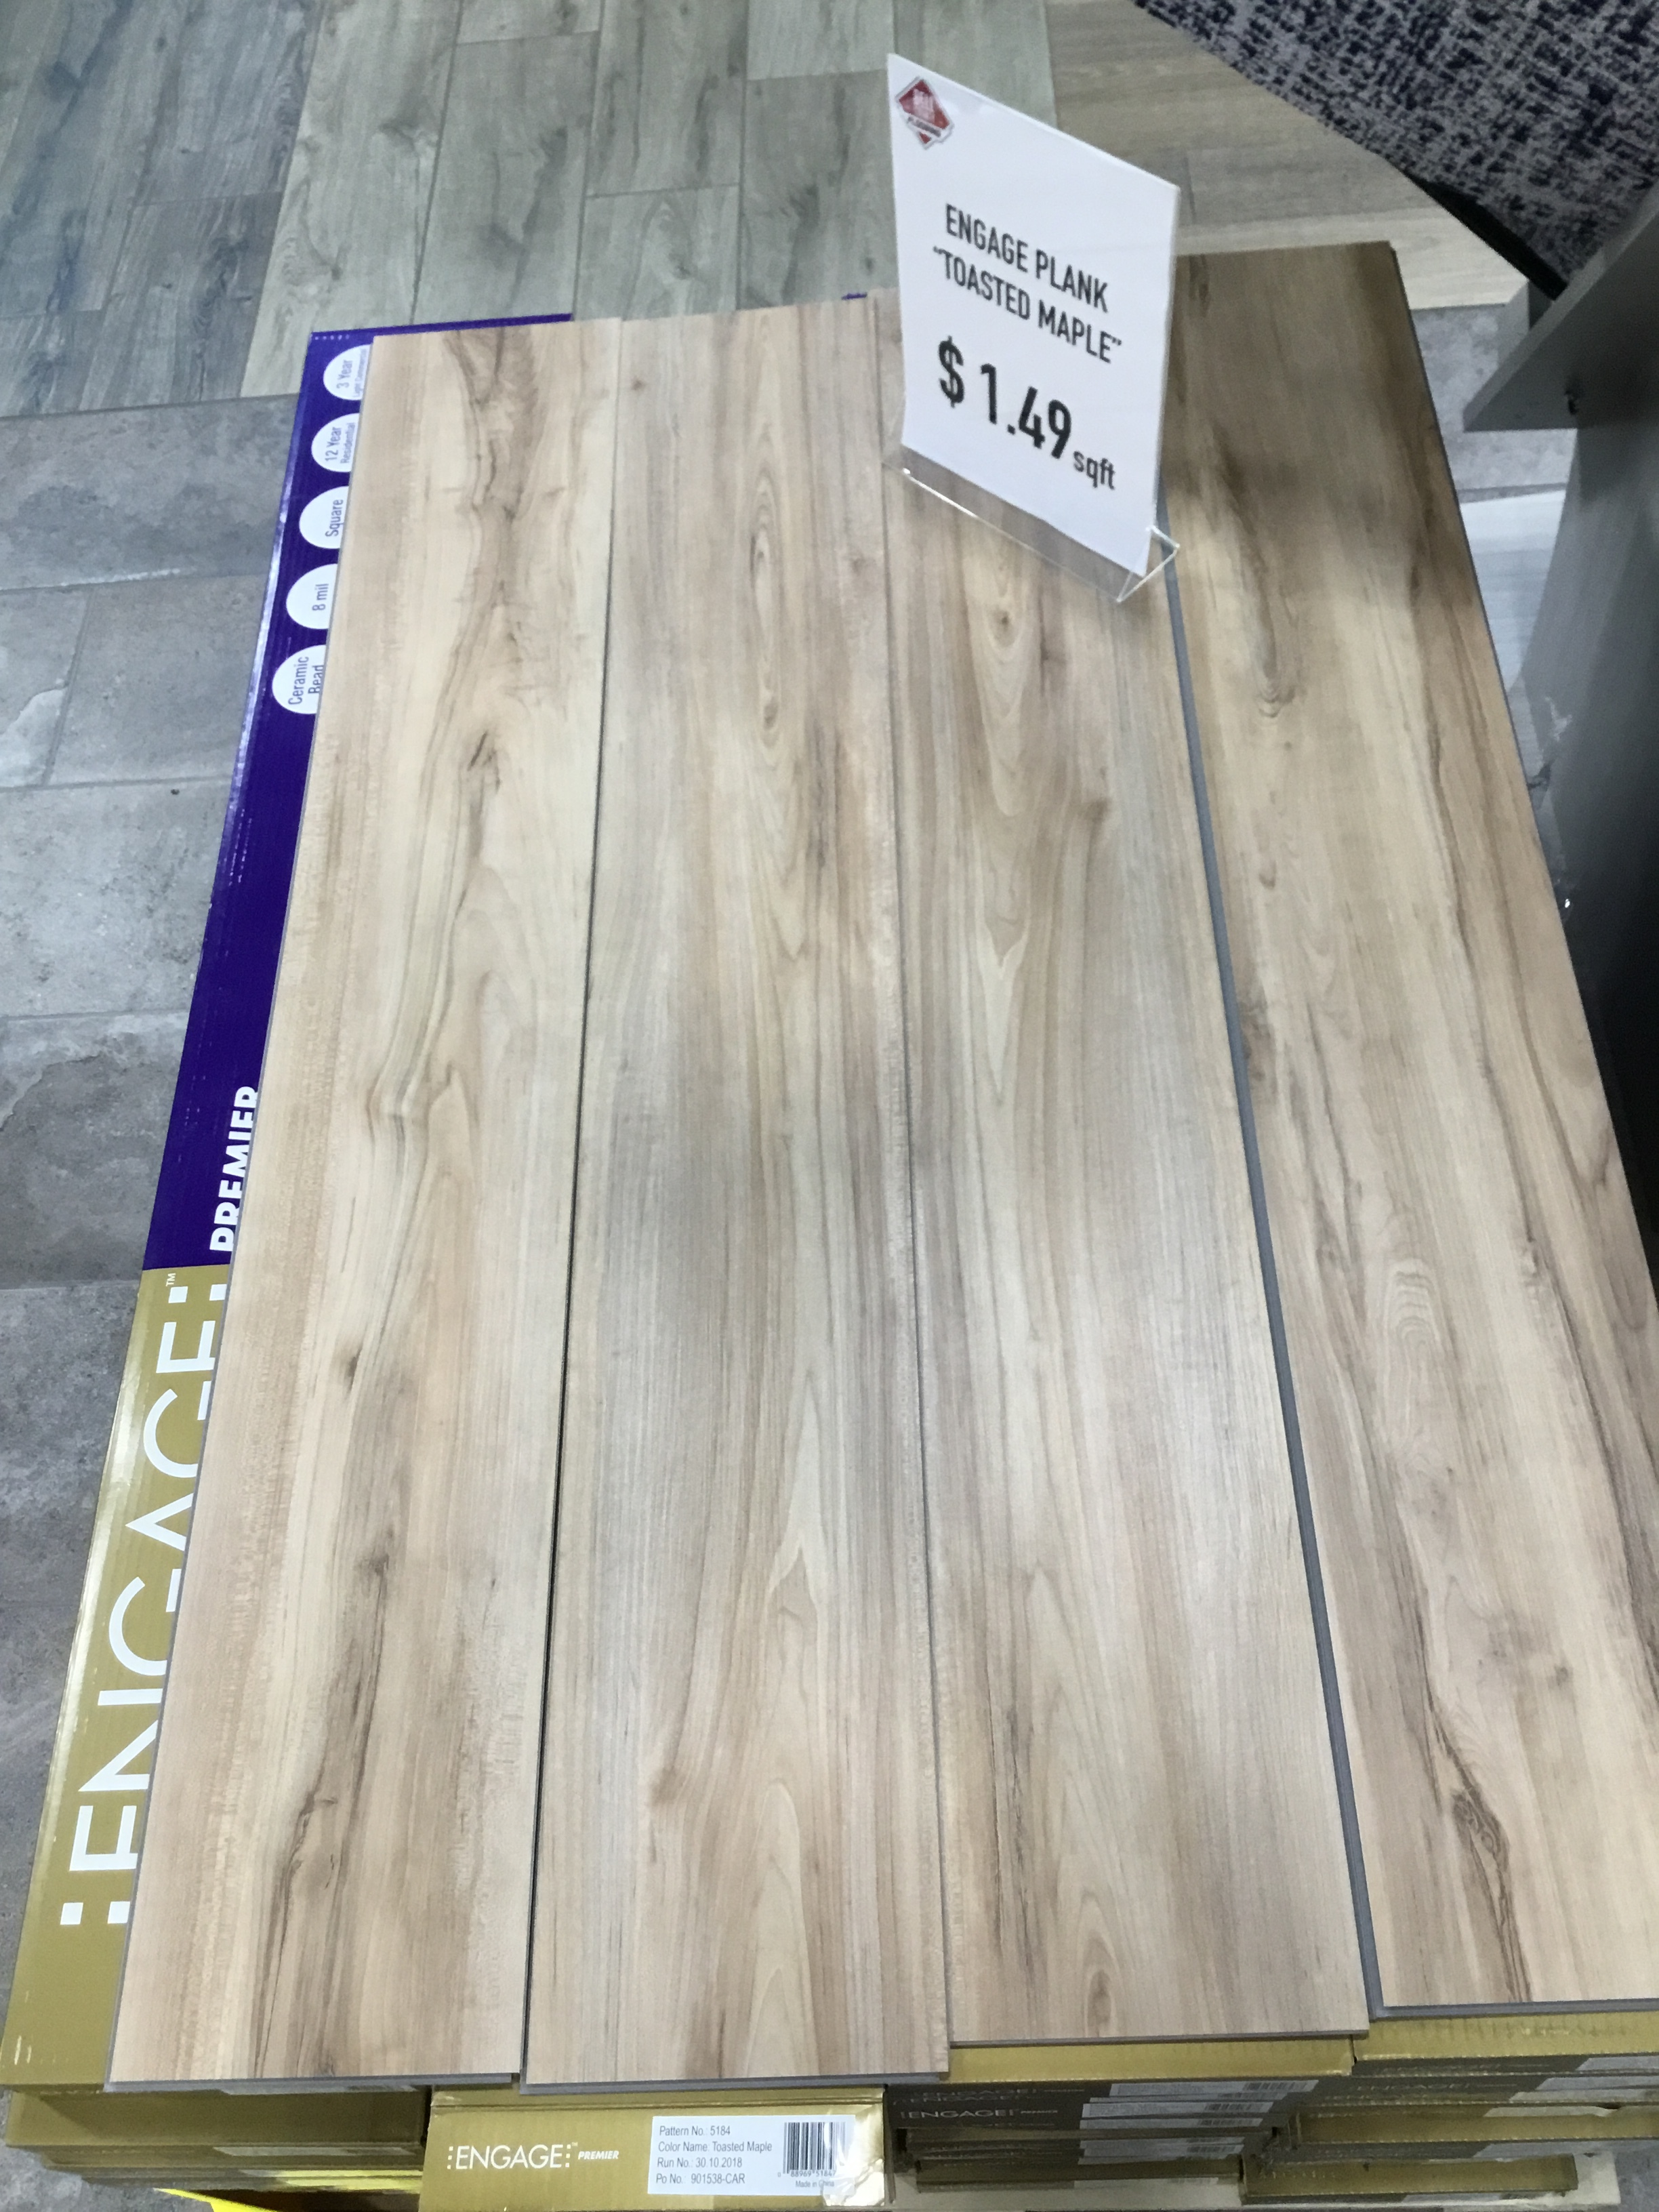 "Engage Floating Plank-SALE! - Color: Toasted MapleMeasurements: 7.5""x48""Cost: $1.49/sqft"